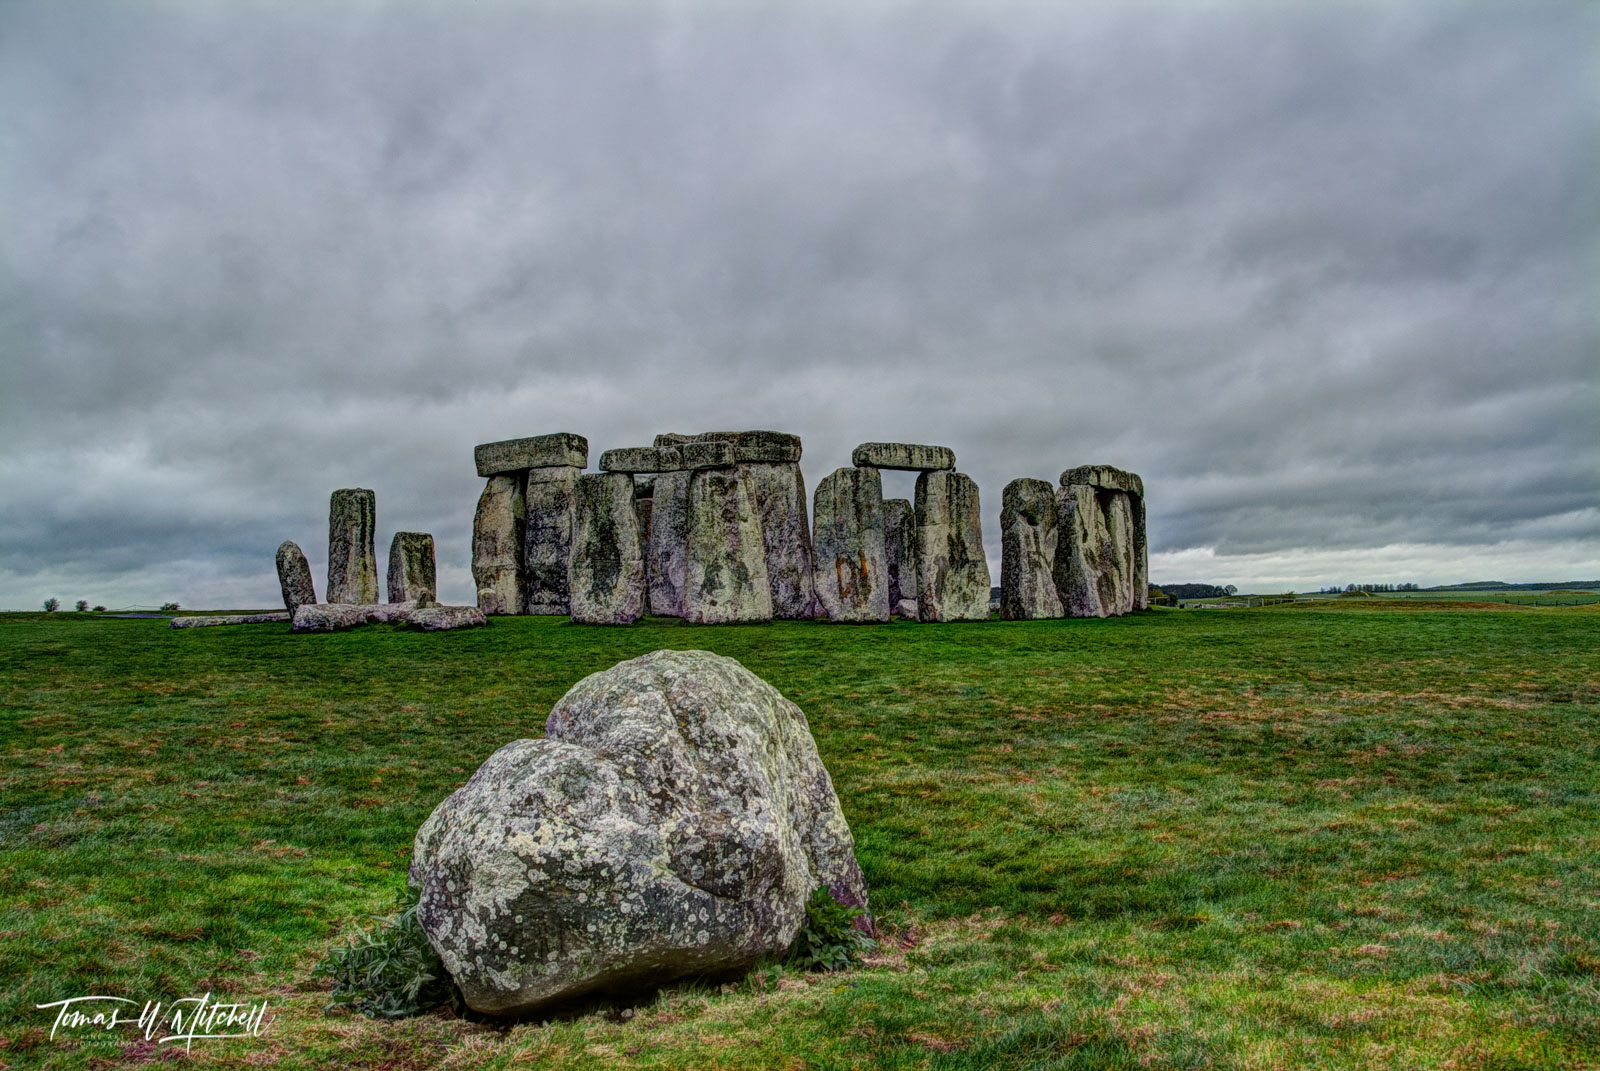 Stonehenge, England, ancient, fine art, museum grade, limited edition, photographing, overcast, rain, gloomy, clouds, green, grass, stones, mystic, mood, photo